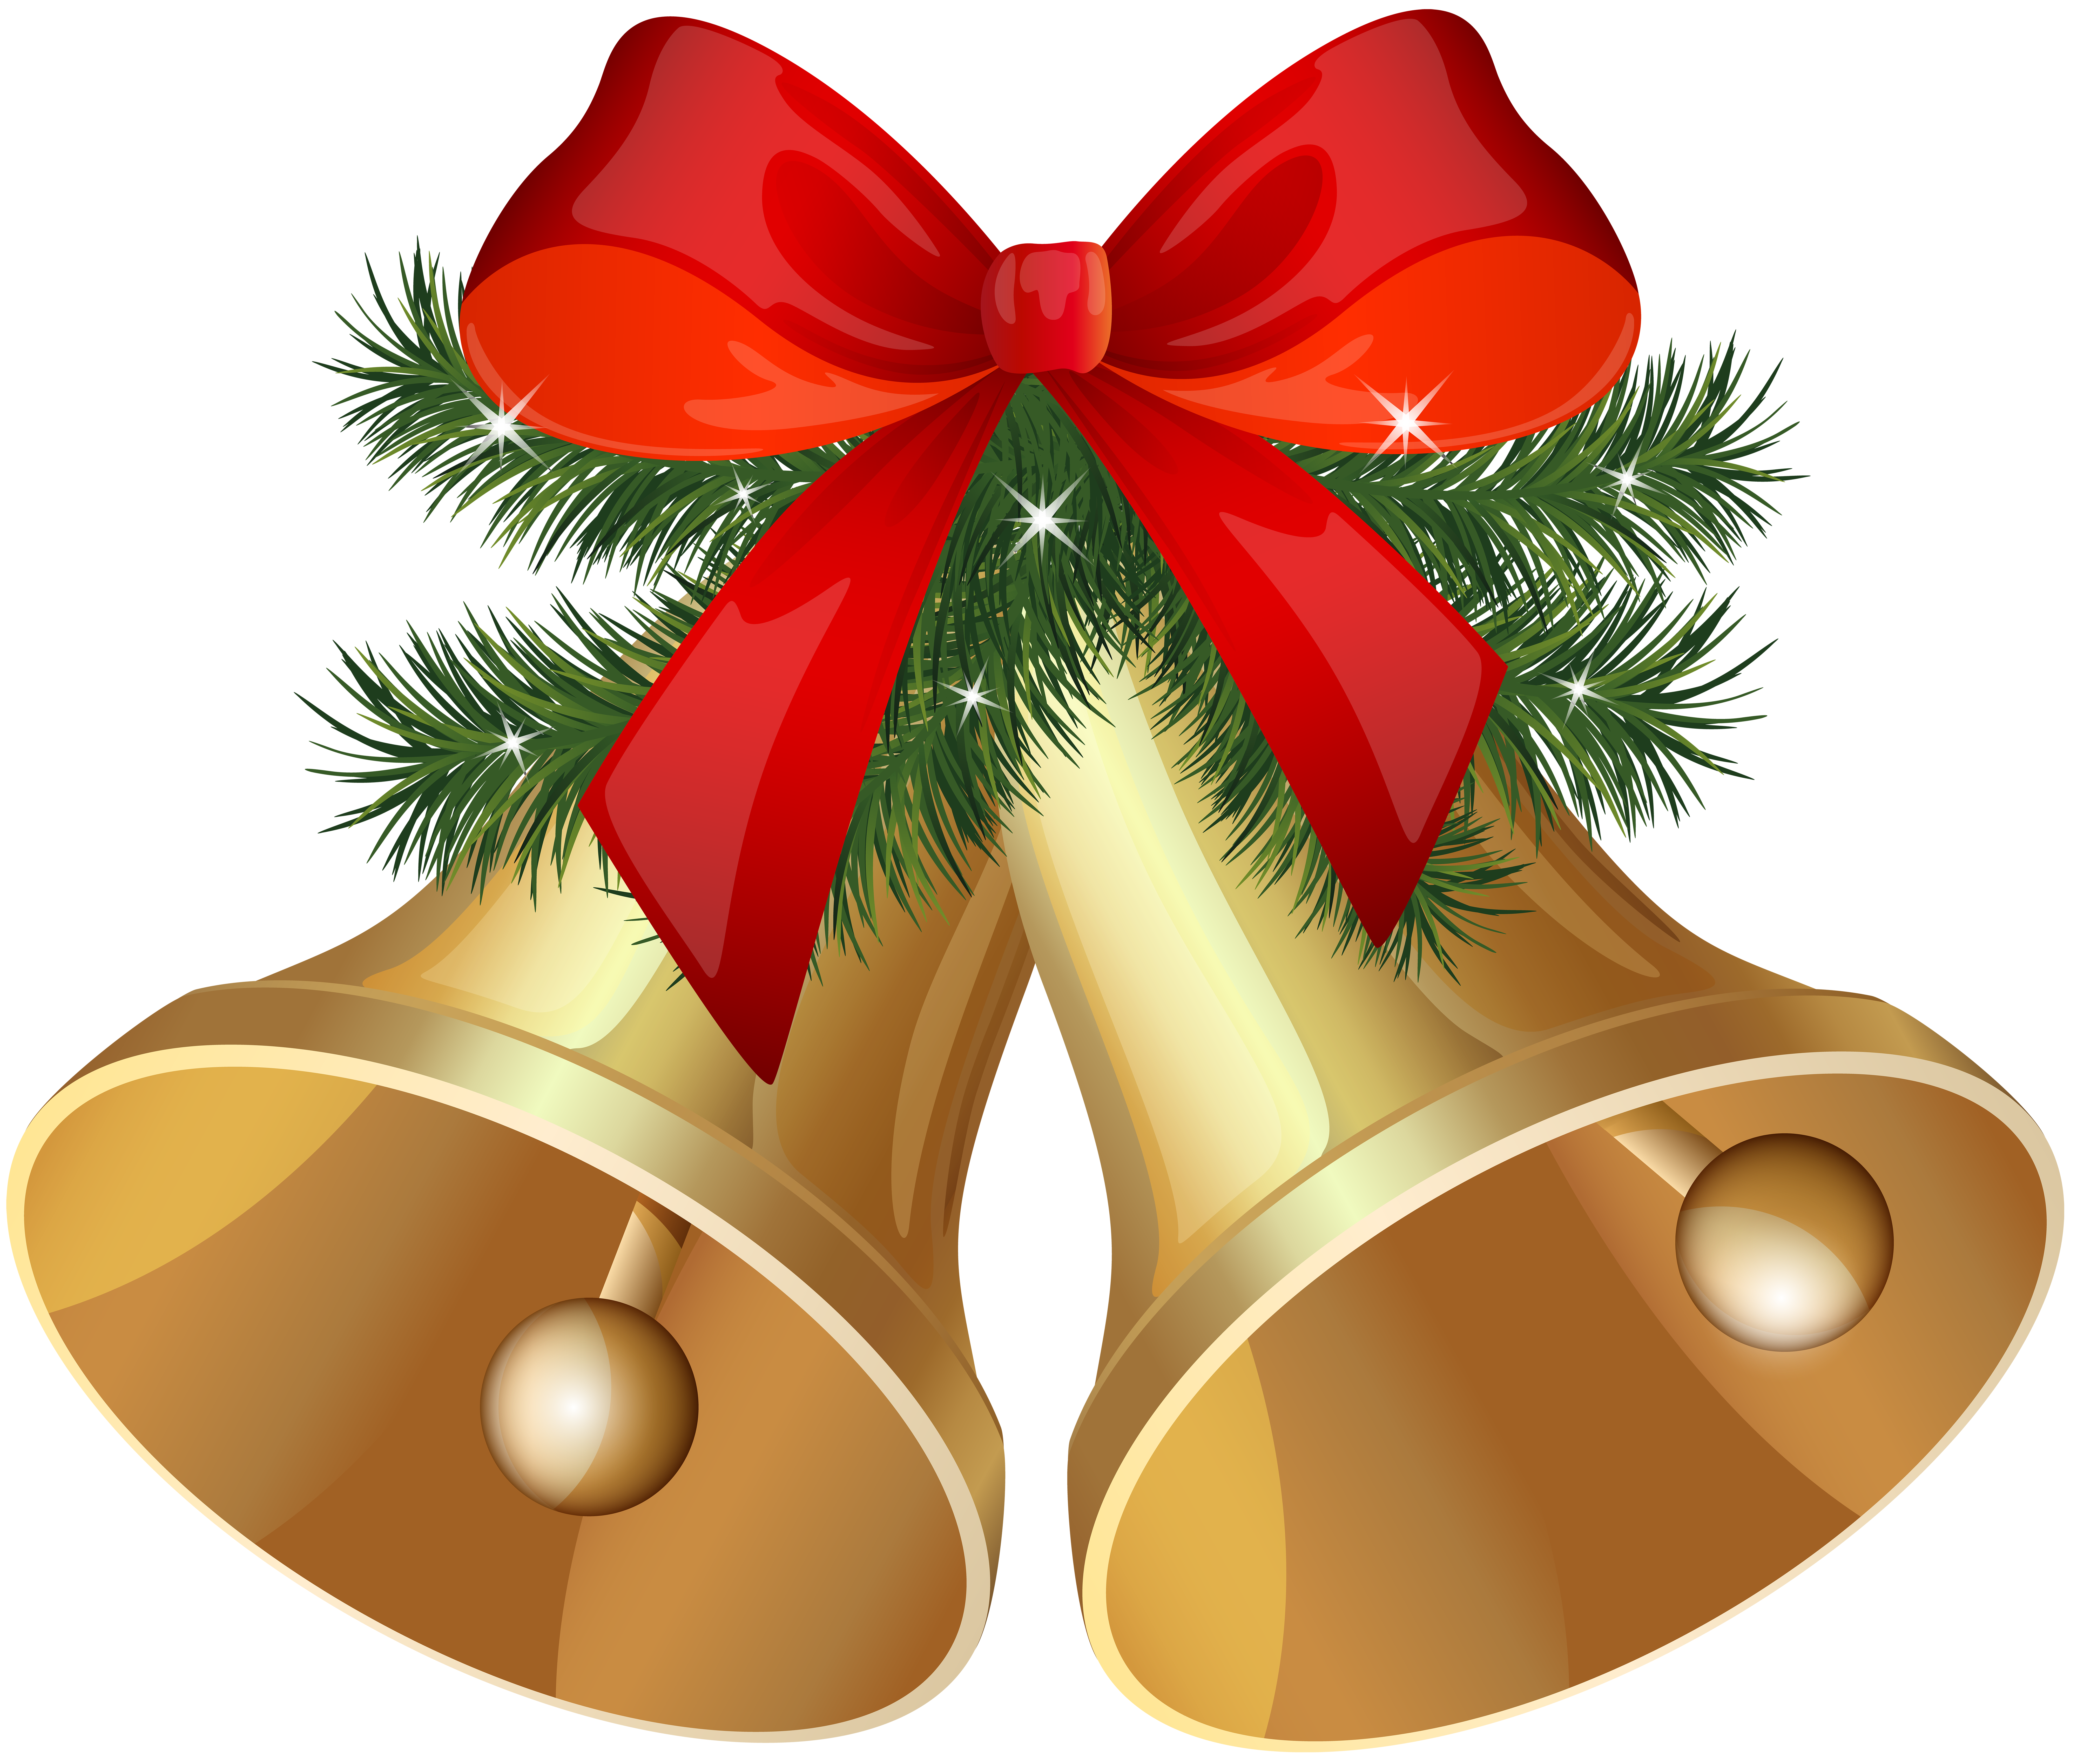 Bells clipart bell instrument. Christmas png image gallery